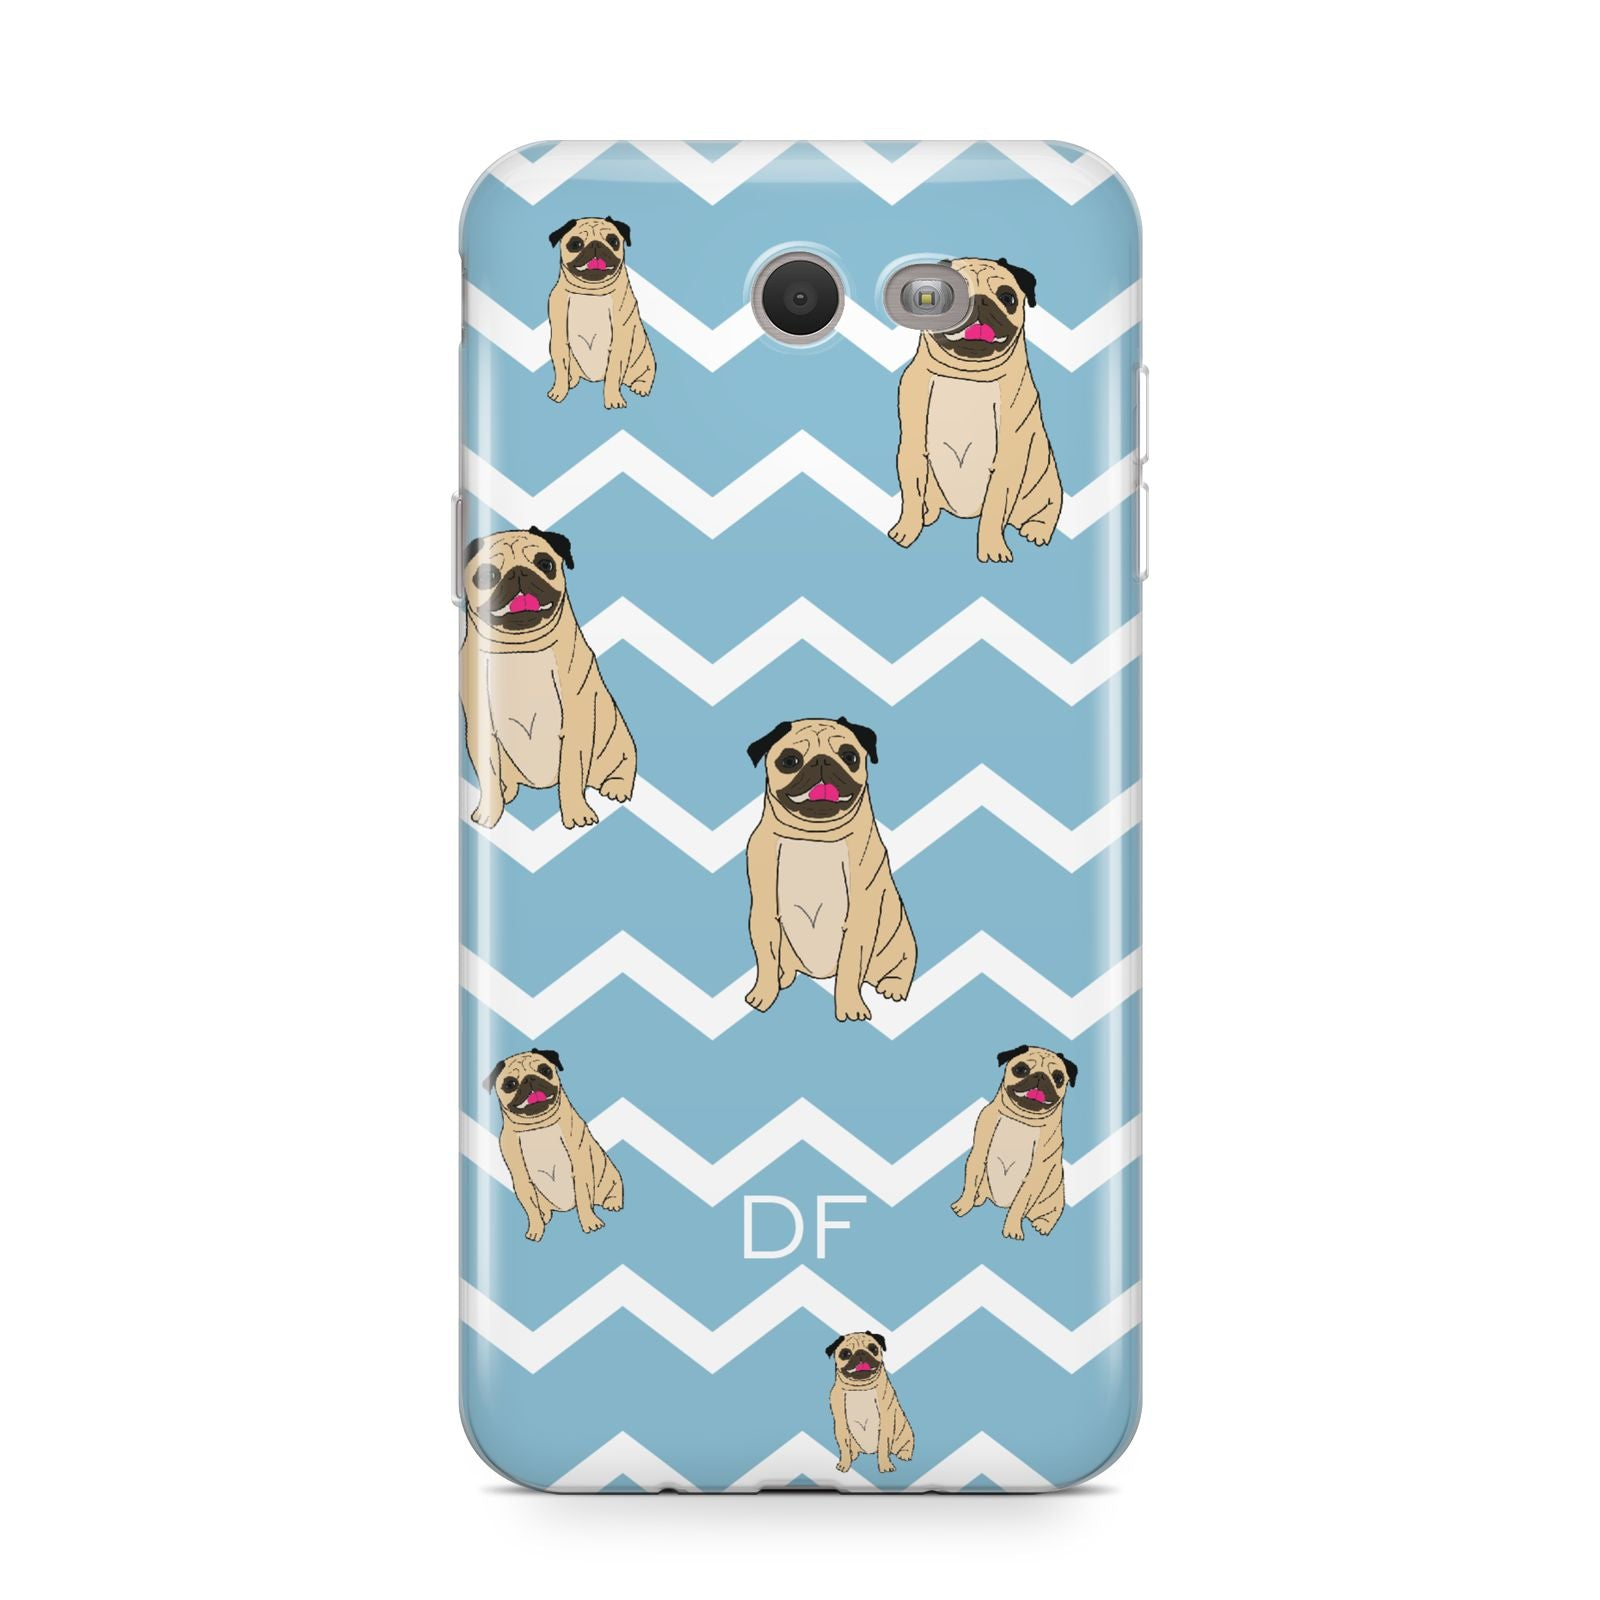 Personalised Pug Initials Samsung Galaxy J7 2017 Case